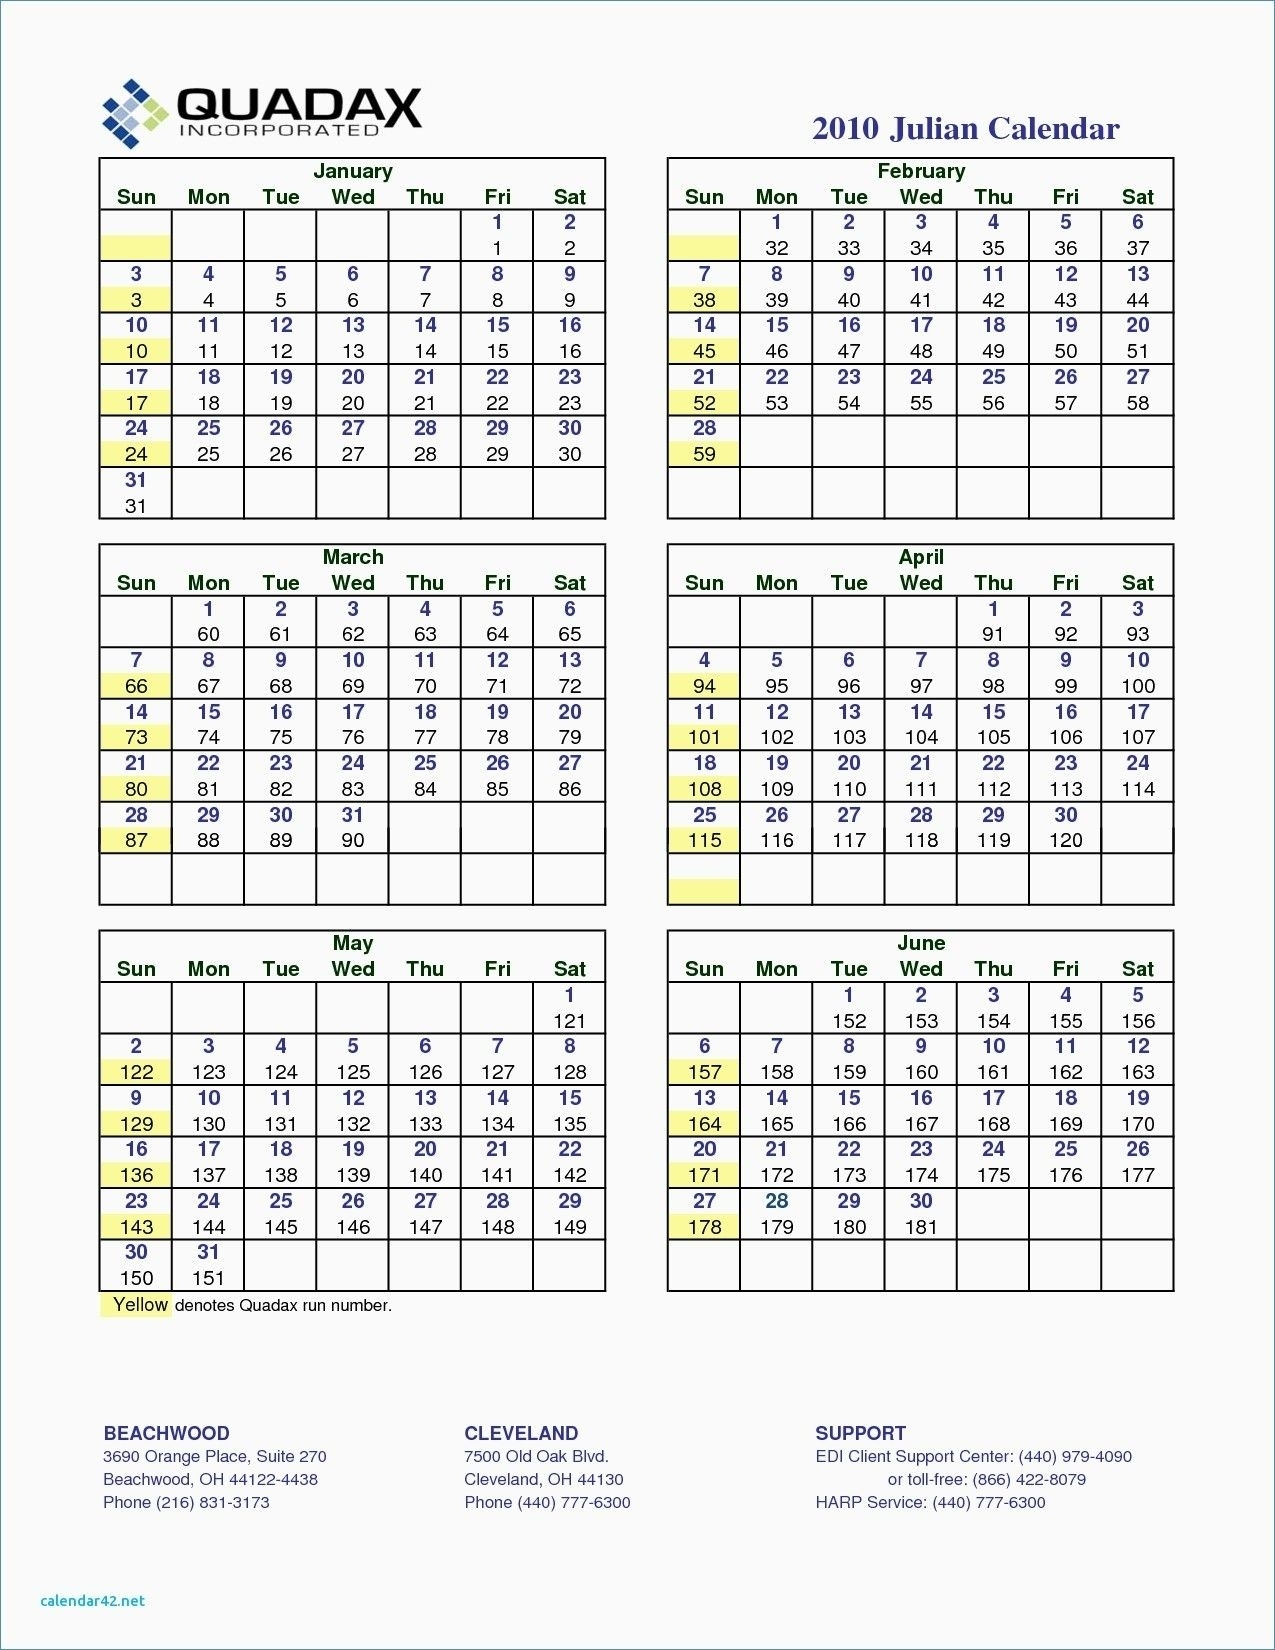 Julian Calendar 2019 Quadax July 2018 Calendar Sri Lanka with 2020 Yearly Calendar With Julian Dates